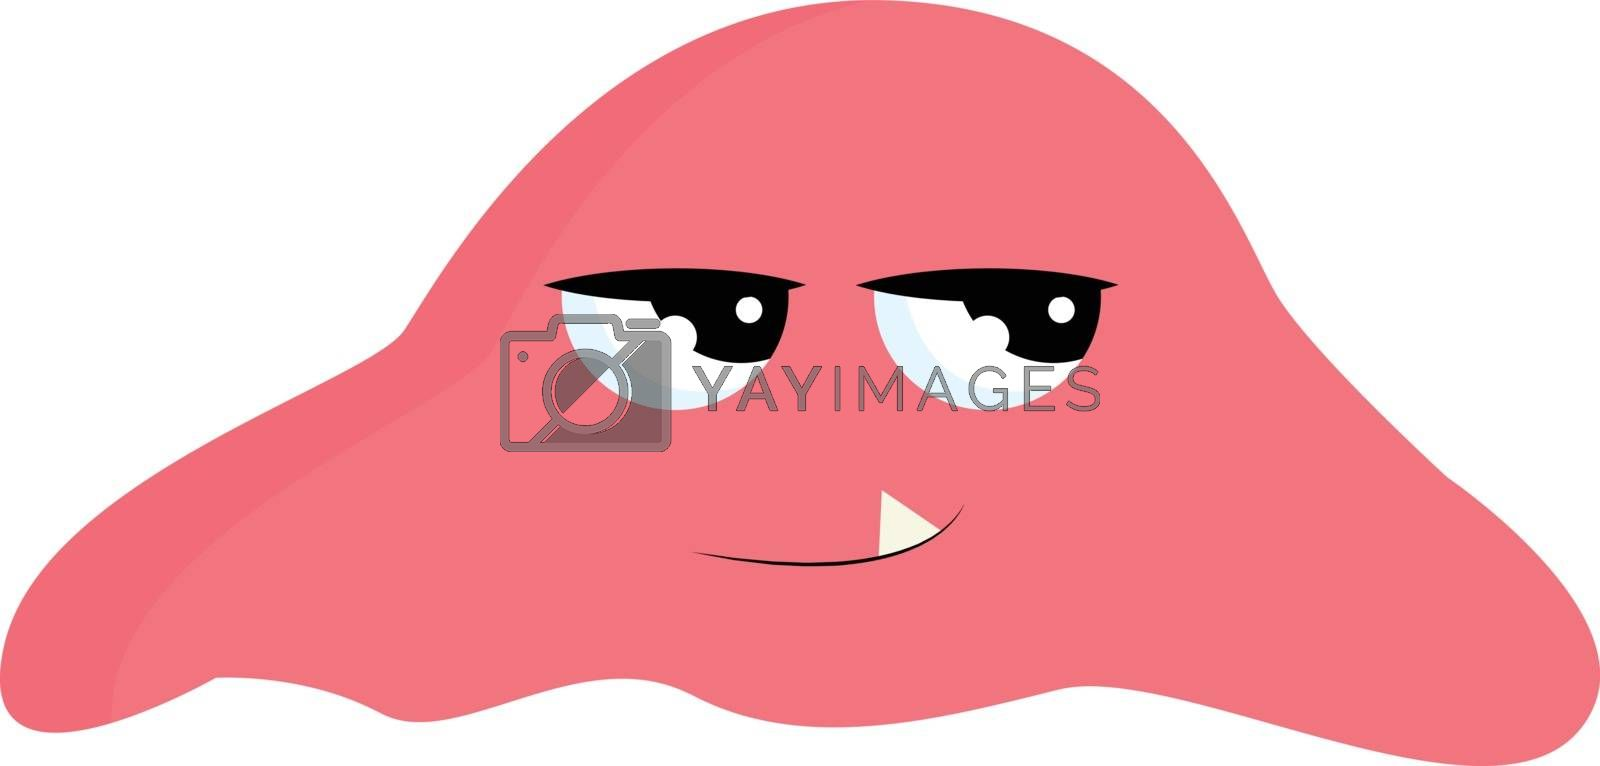 Royalty free image of Cartoon pink monster with a fang tooth projecting outward looks  by Morphart